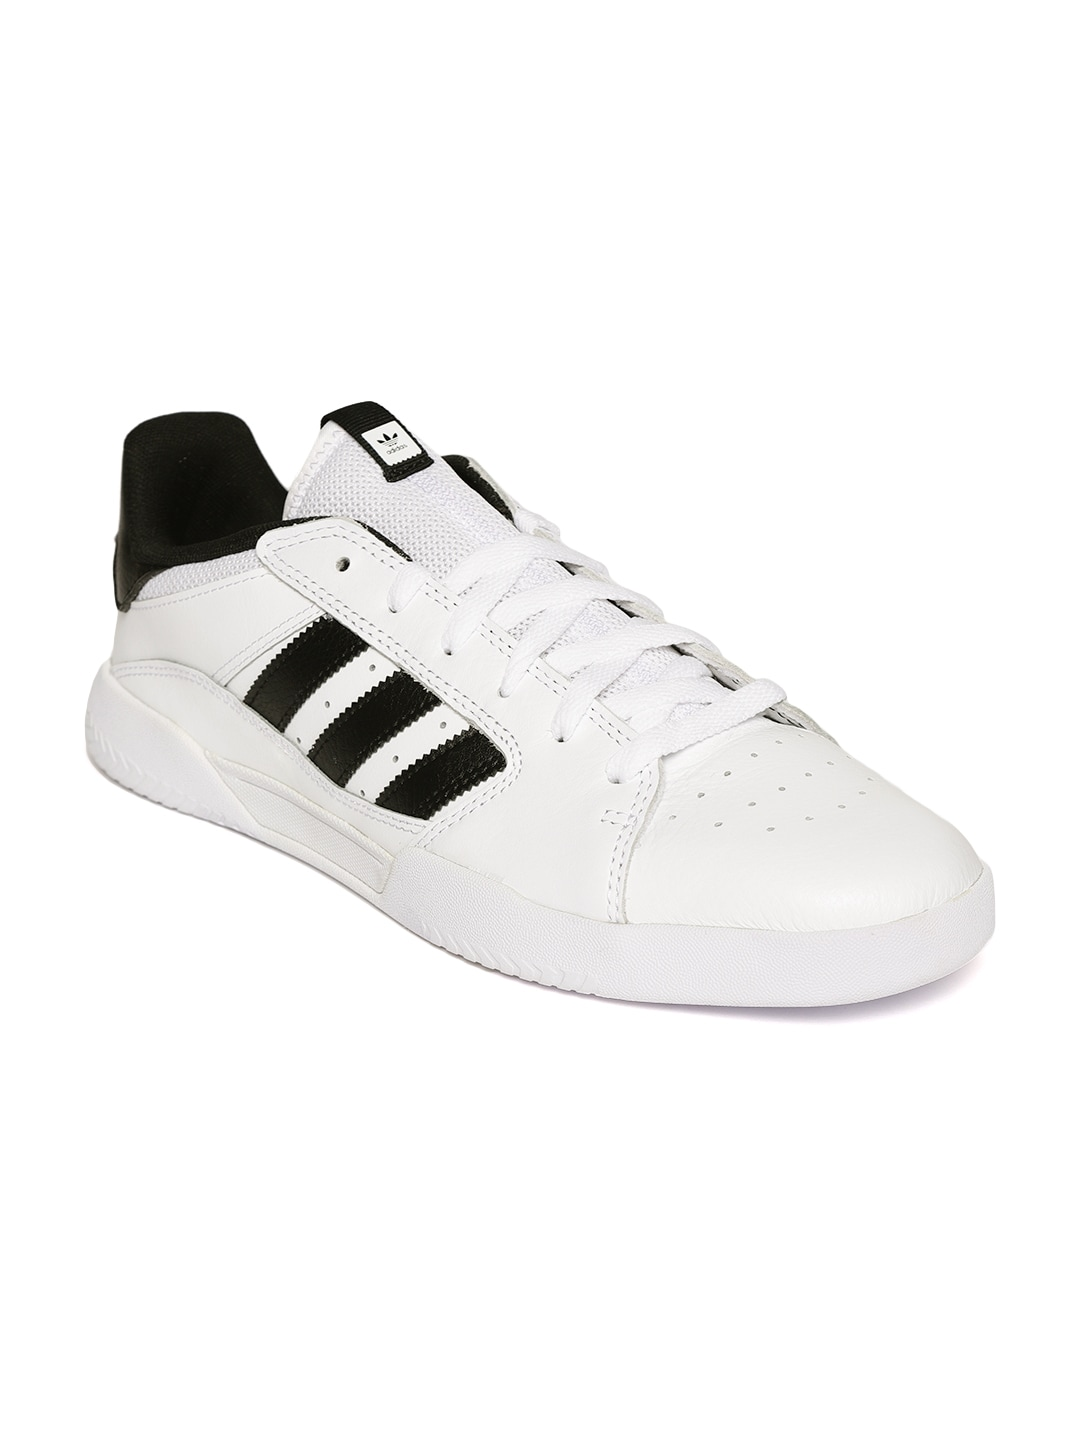 862867ed2180 Adidas Men White Casual - Buy Adidas Men White Casual online in India